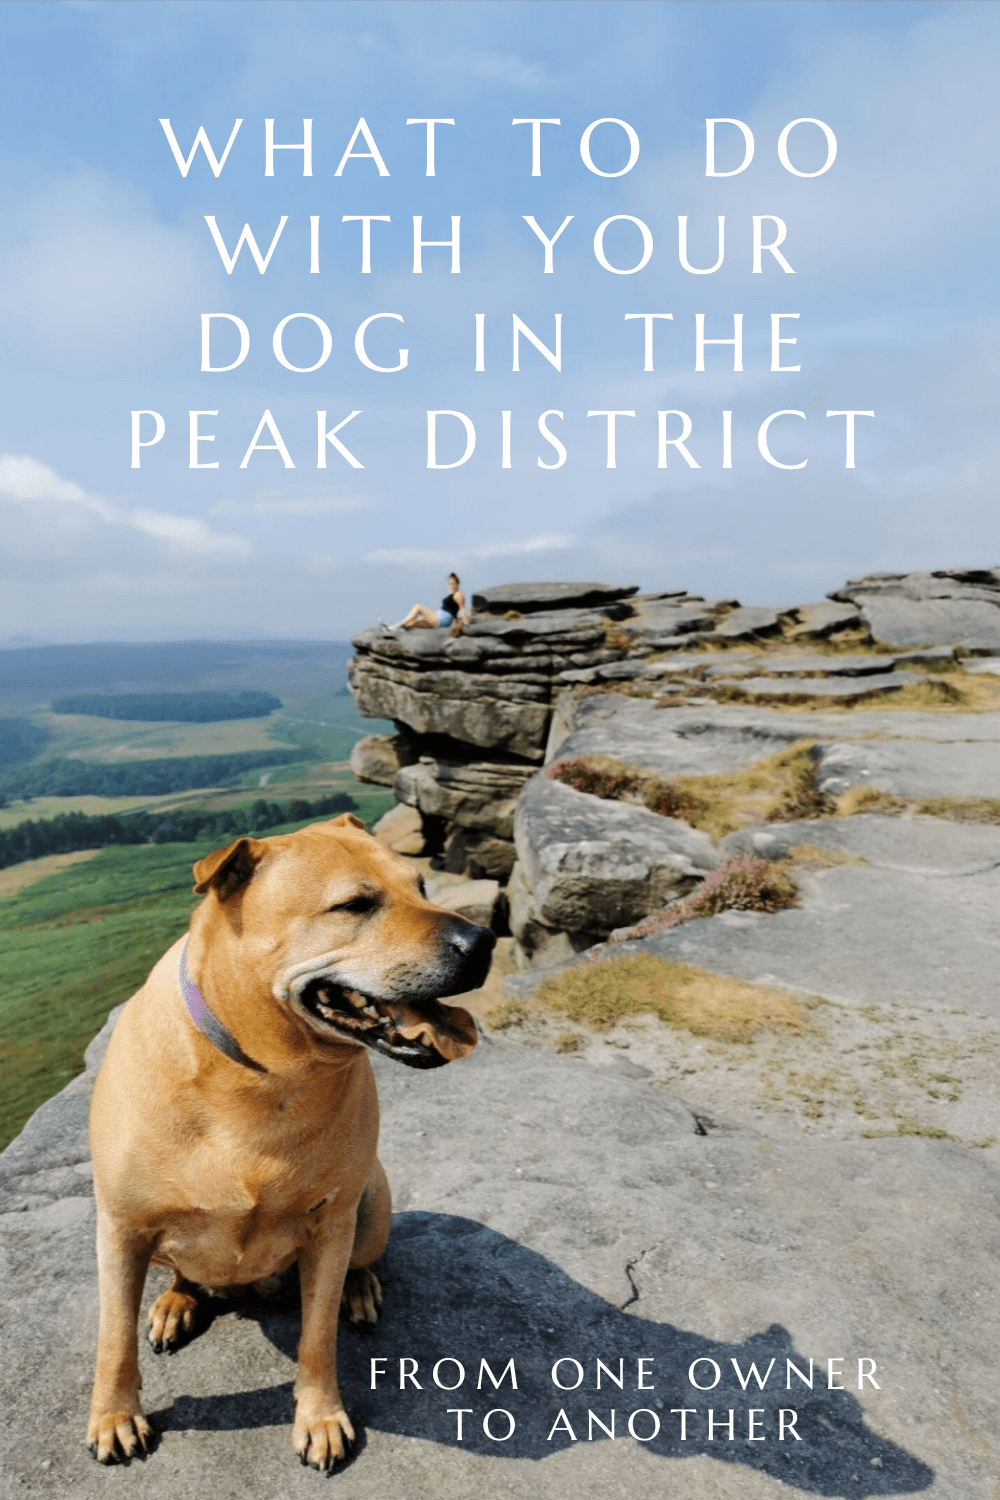 What to do with your dog in the Peak District by From One Owner to Another